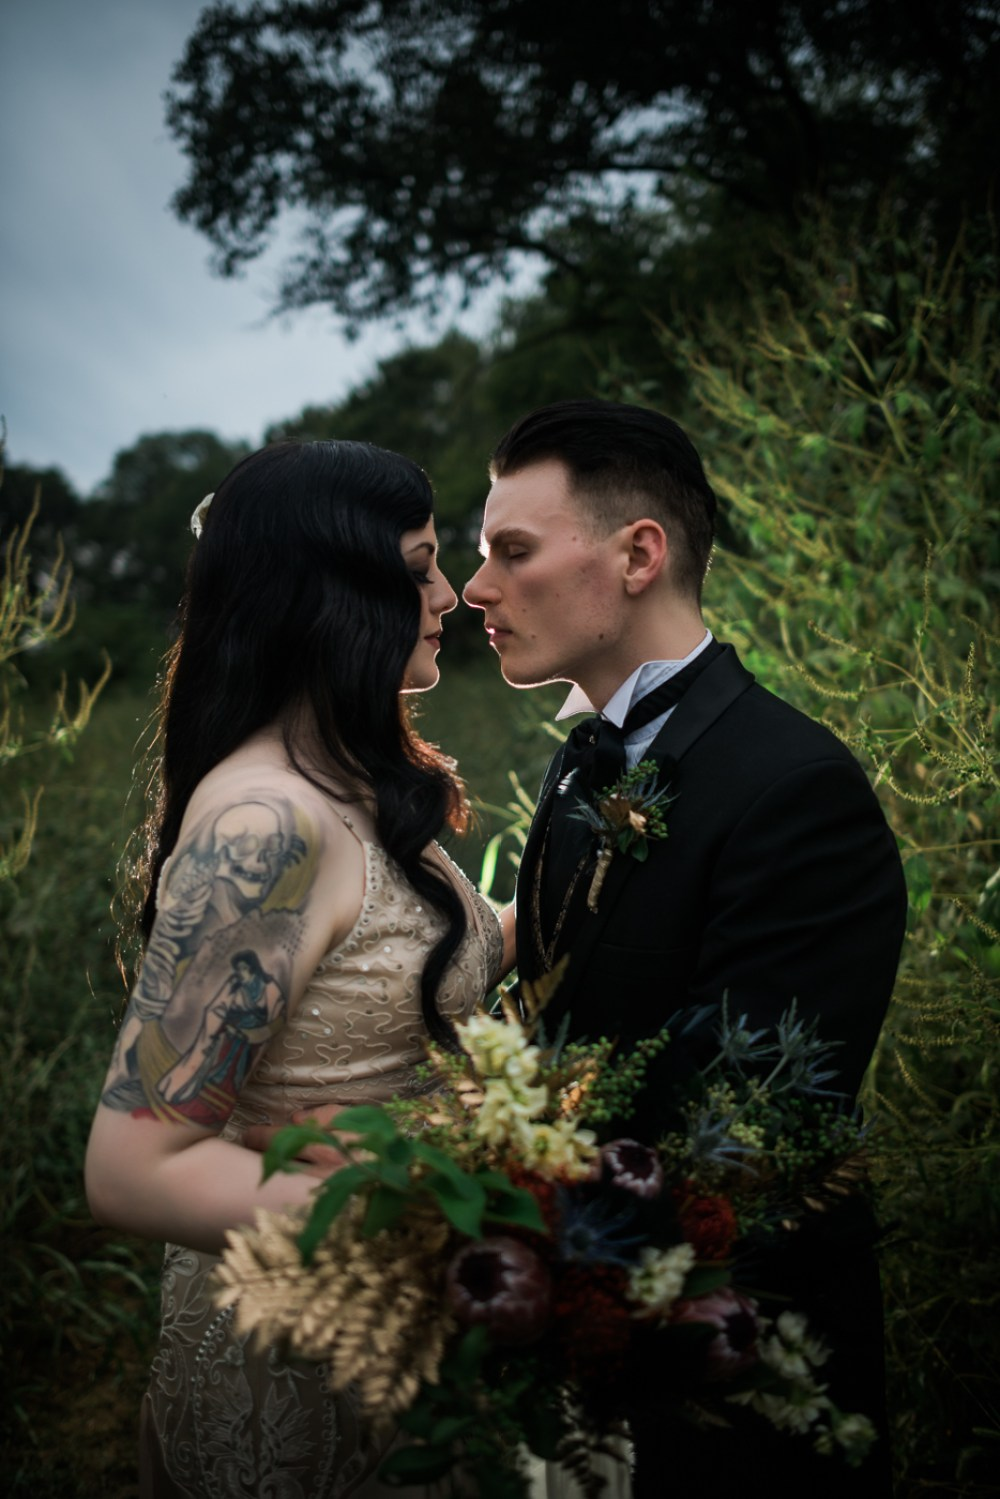 and-how-imaging-gothic-inspired-styled-shoot-gothic-wedding-1920s-theme-wedding-1920s-inspired-styled-shoot-halloween-styled-shoot-gothic-inspired-wedding-42